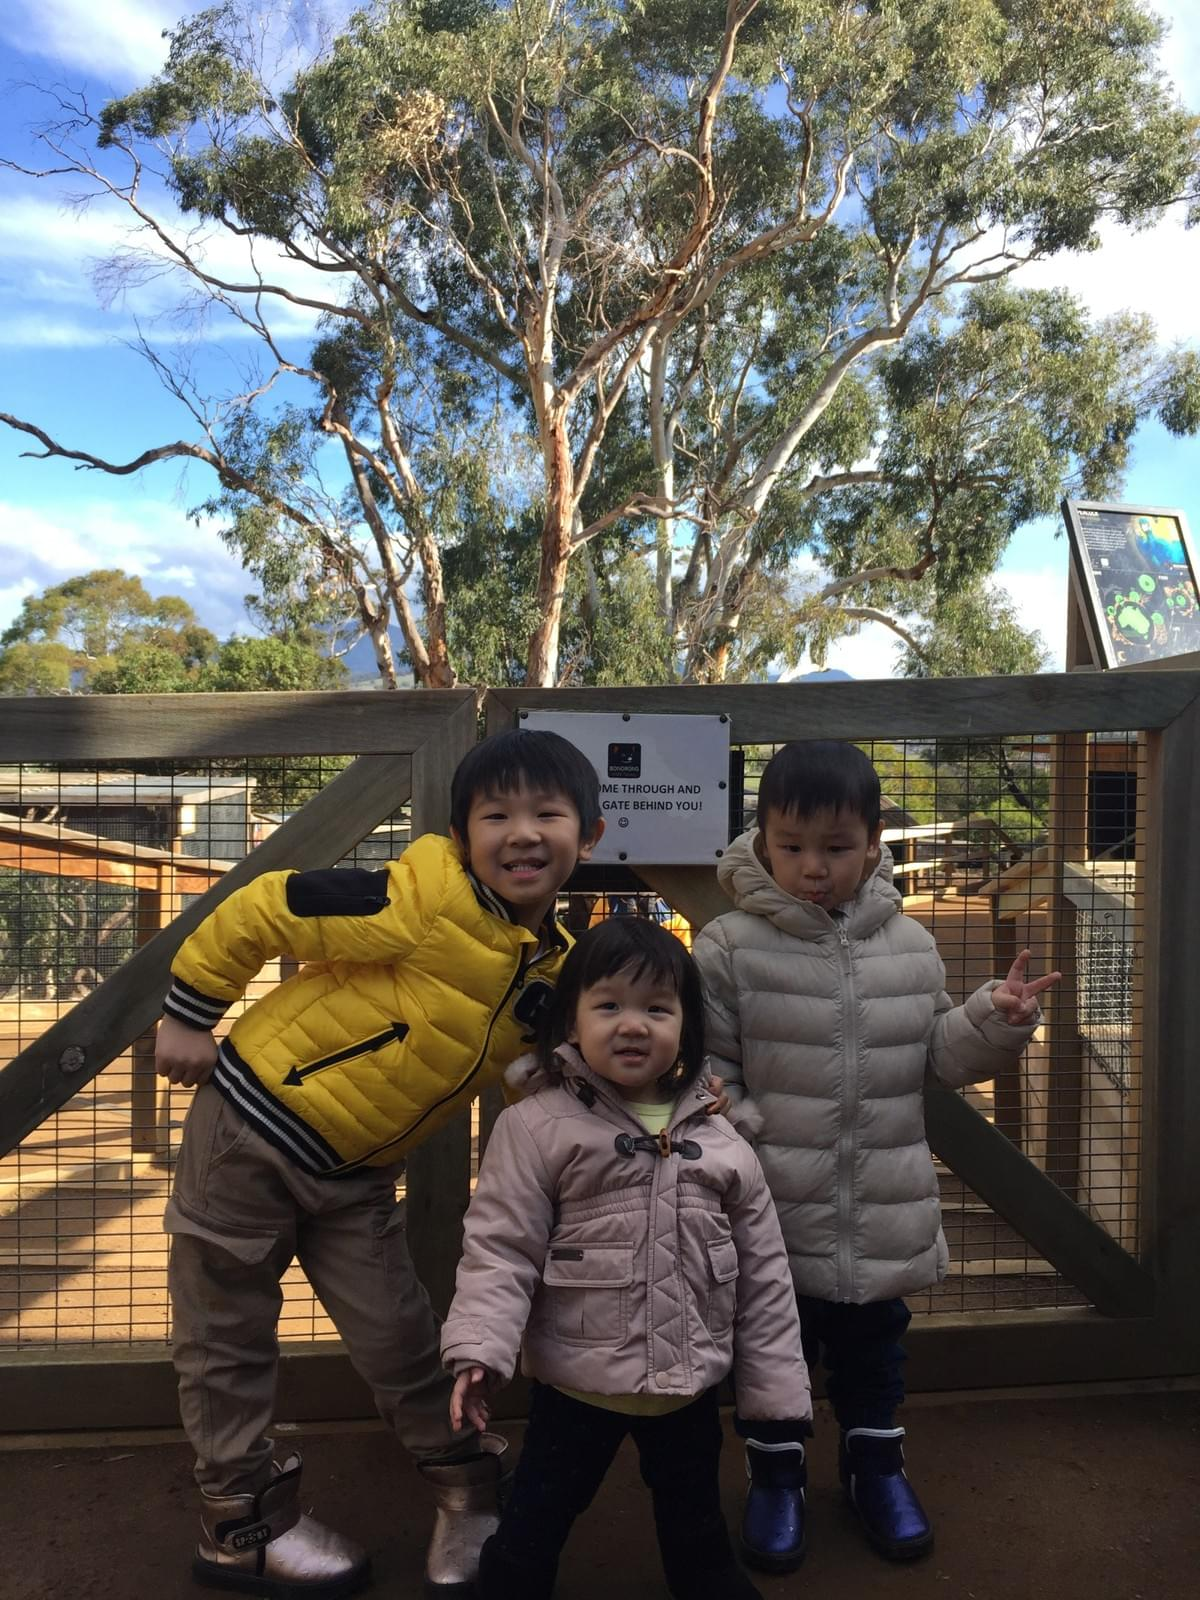 Bonorong Wildlife Sanctuary. 11 places to visit in Hobart, Tasmania